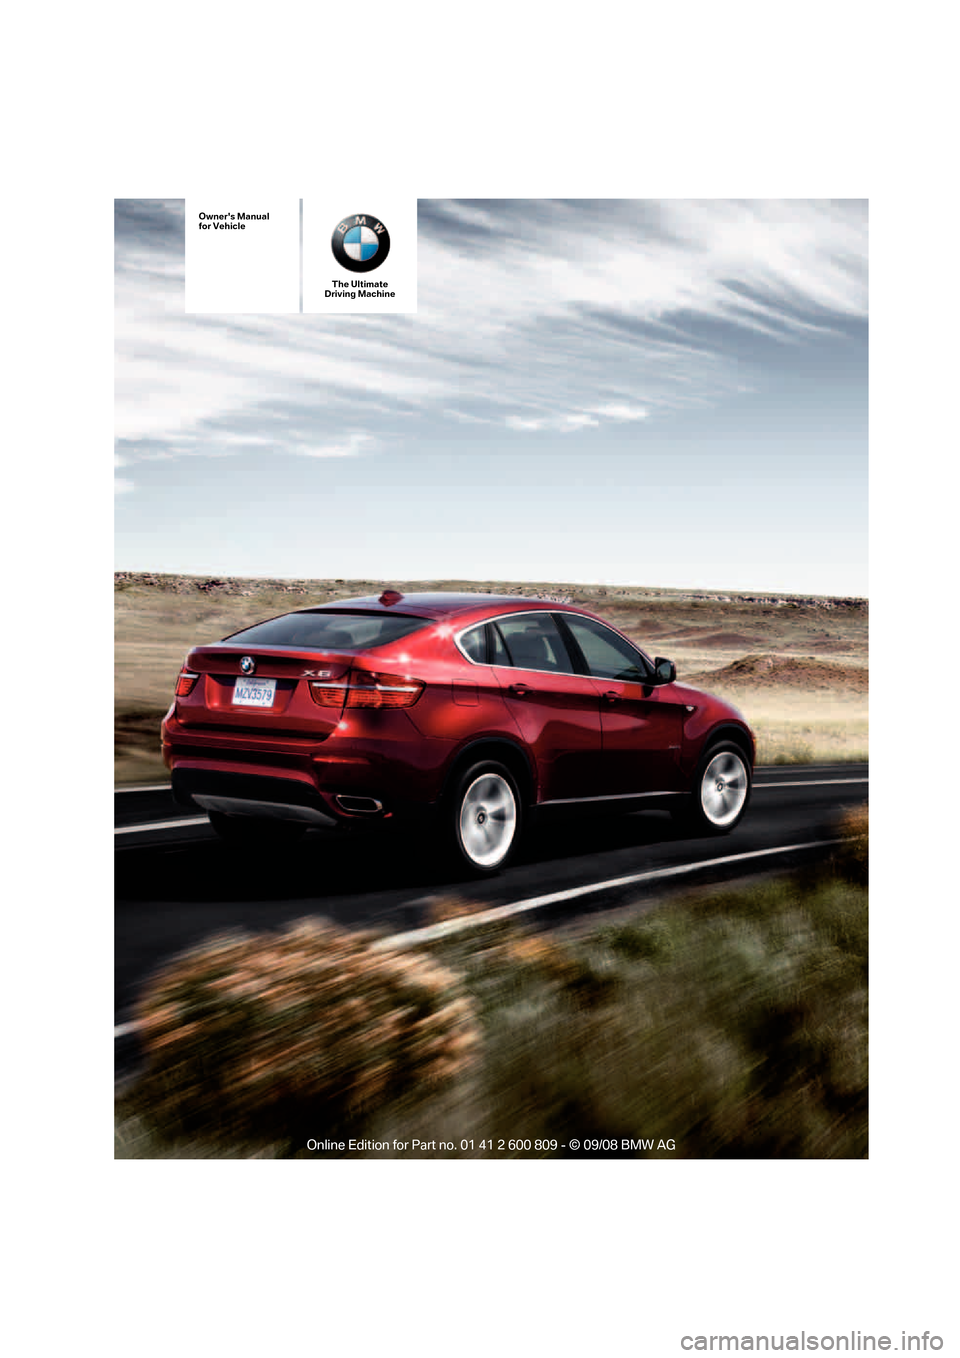 BMW X6 XDRIVE 2009 E71 Owners Manual, Page 1